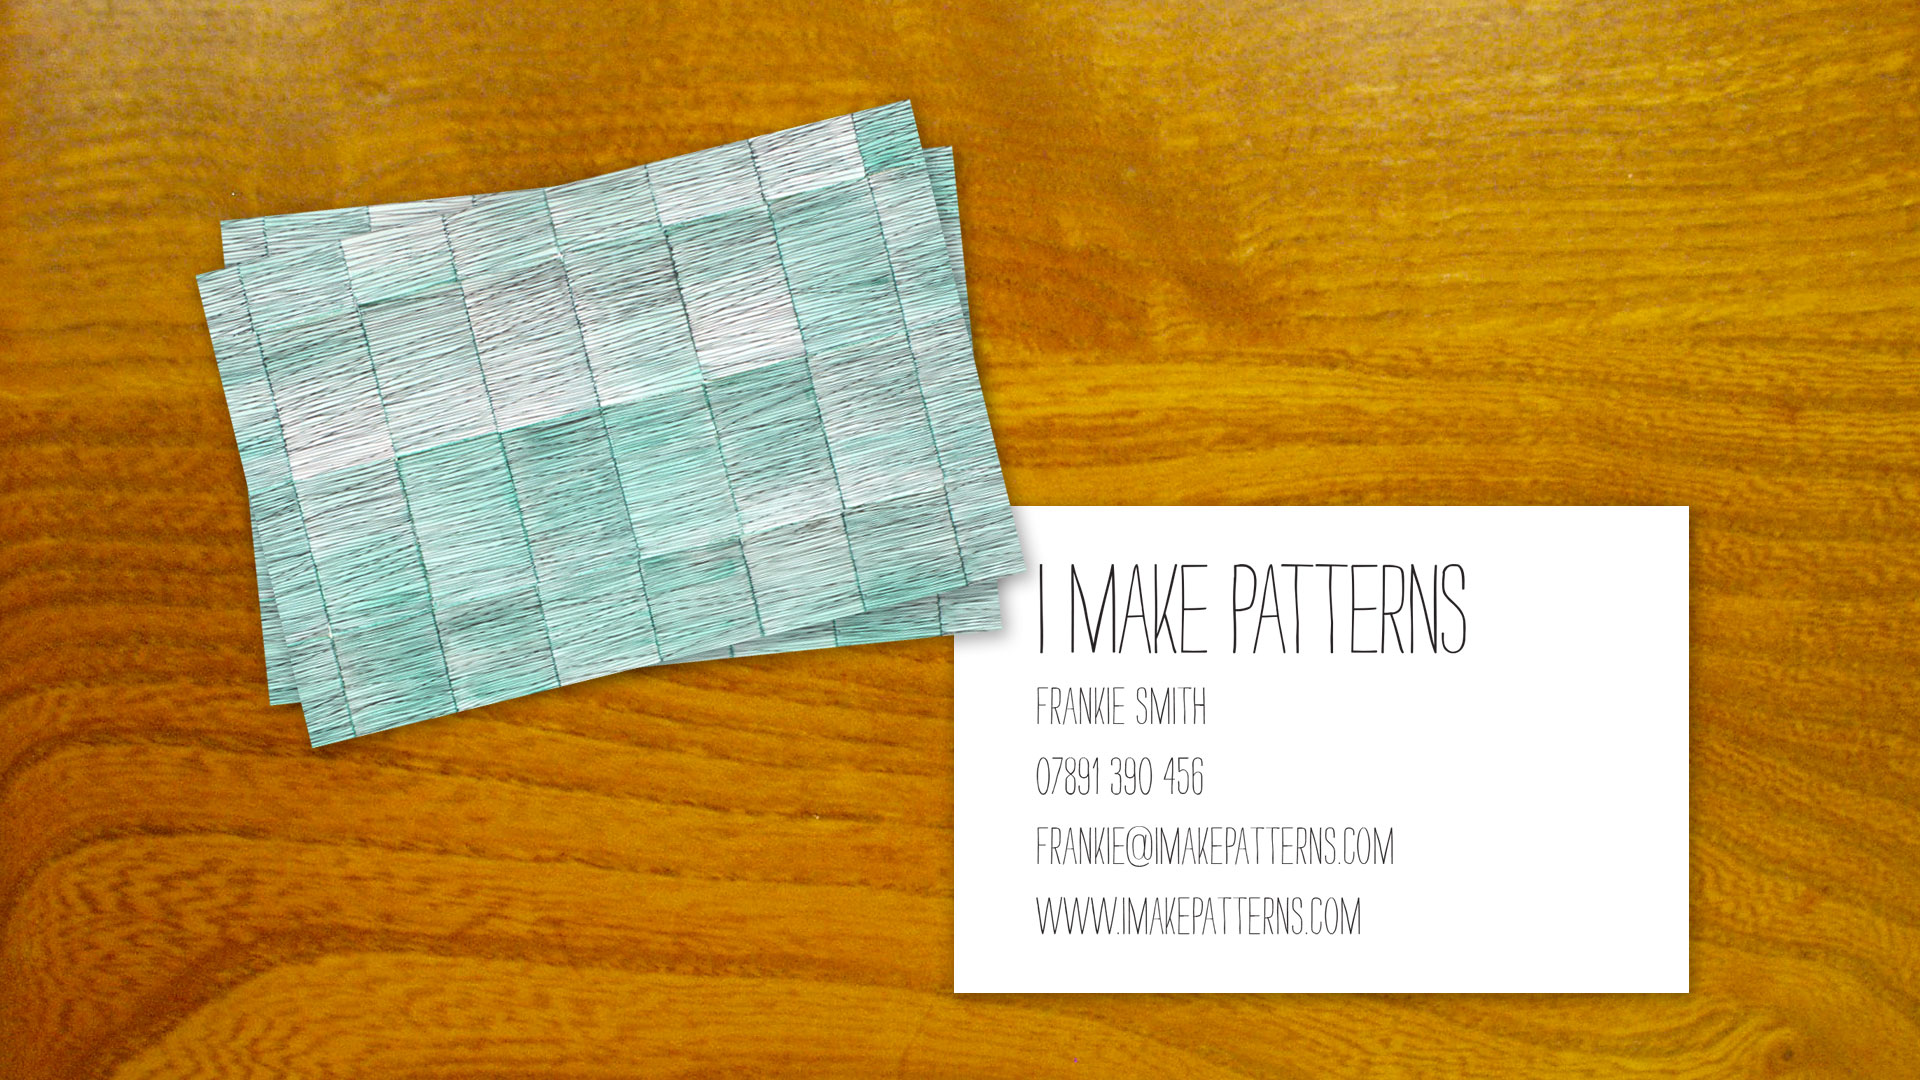 I Make Patterns Business Card